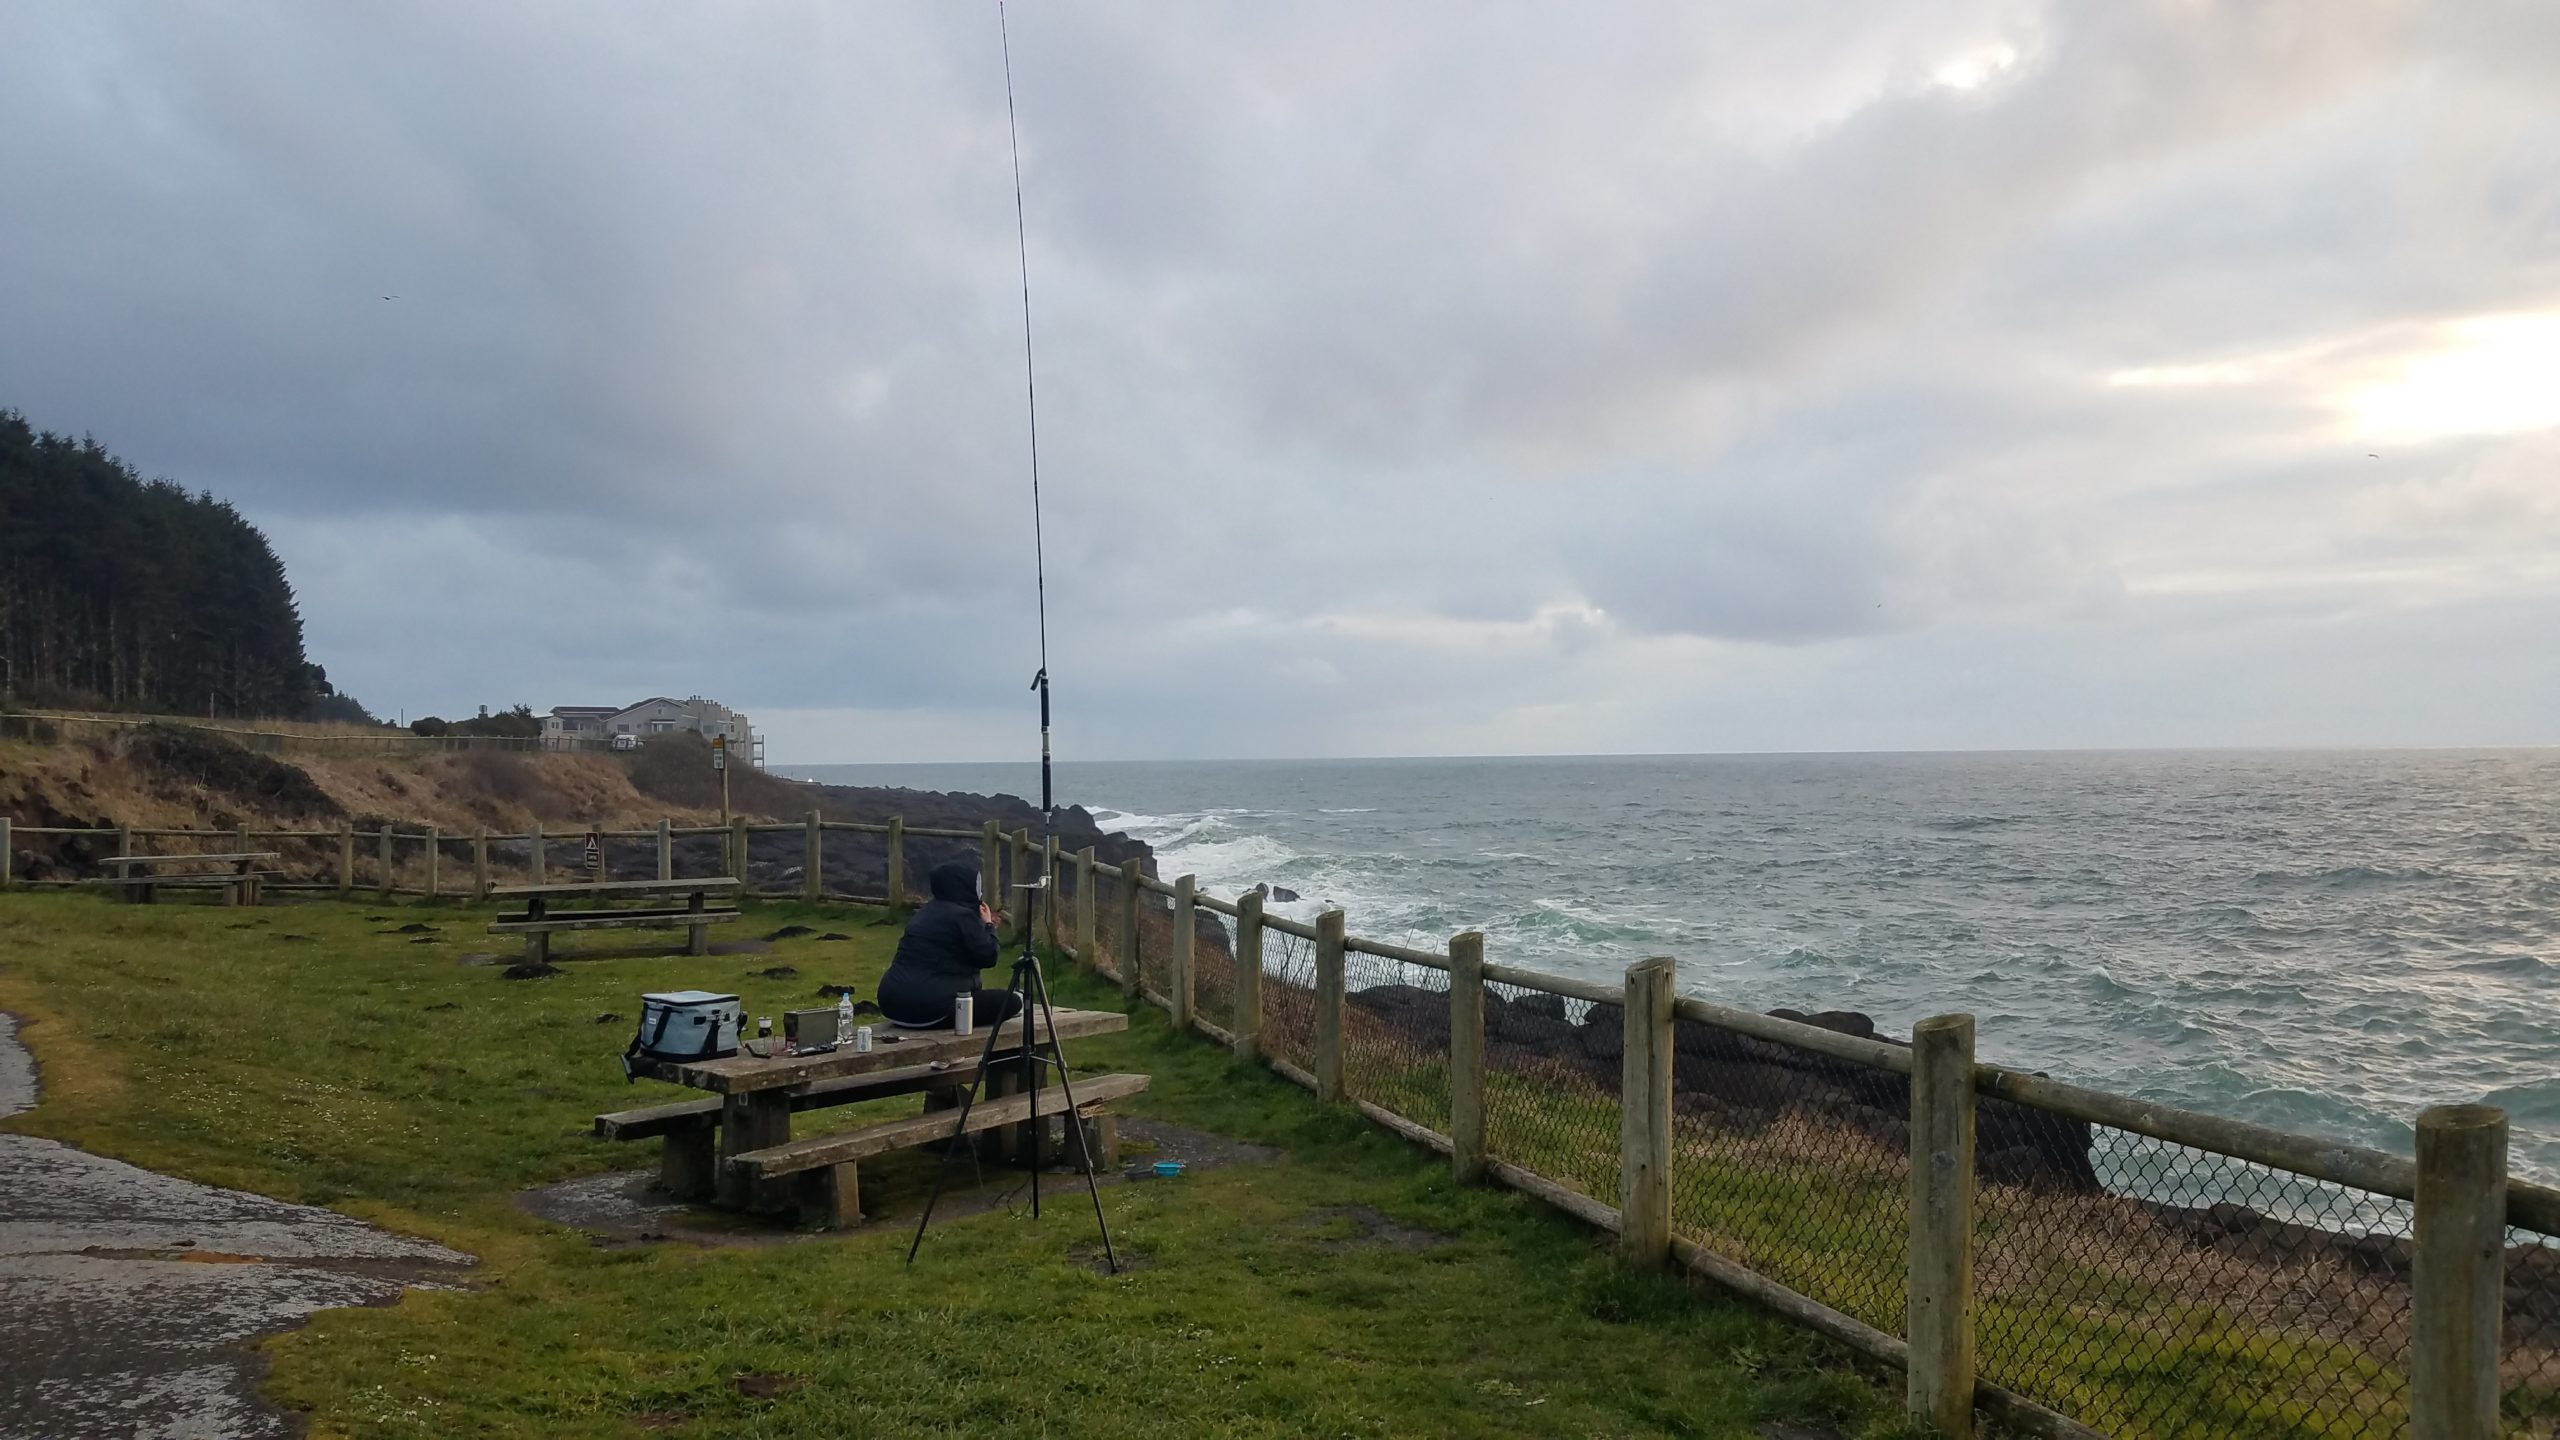 View of a grassy area surrounded by a wood and metal mesh fence, and trees with a wooden table, fence, and ocean in the background. The sky is cloudy and ocean waves crash against rocks. A woman sits on a wooden table with a cooler, drinks, and radio equipment staring at the ocean with an antenna near the table.